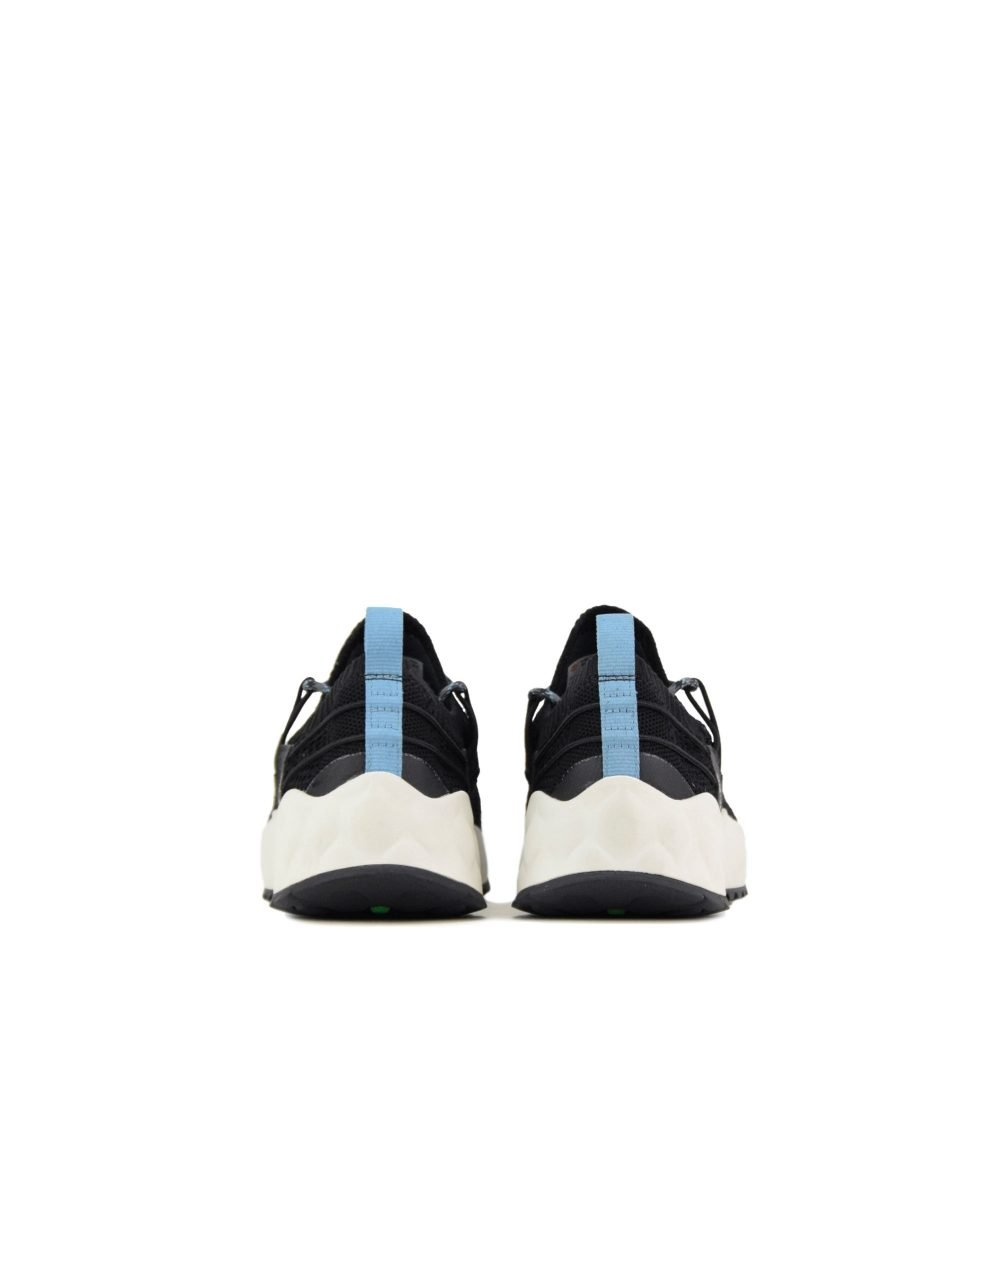 Timberland Solar Wave Low Knit (TB0A2DGD 015) Black